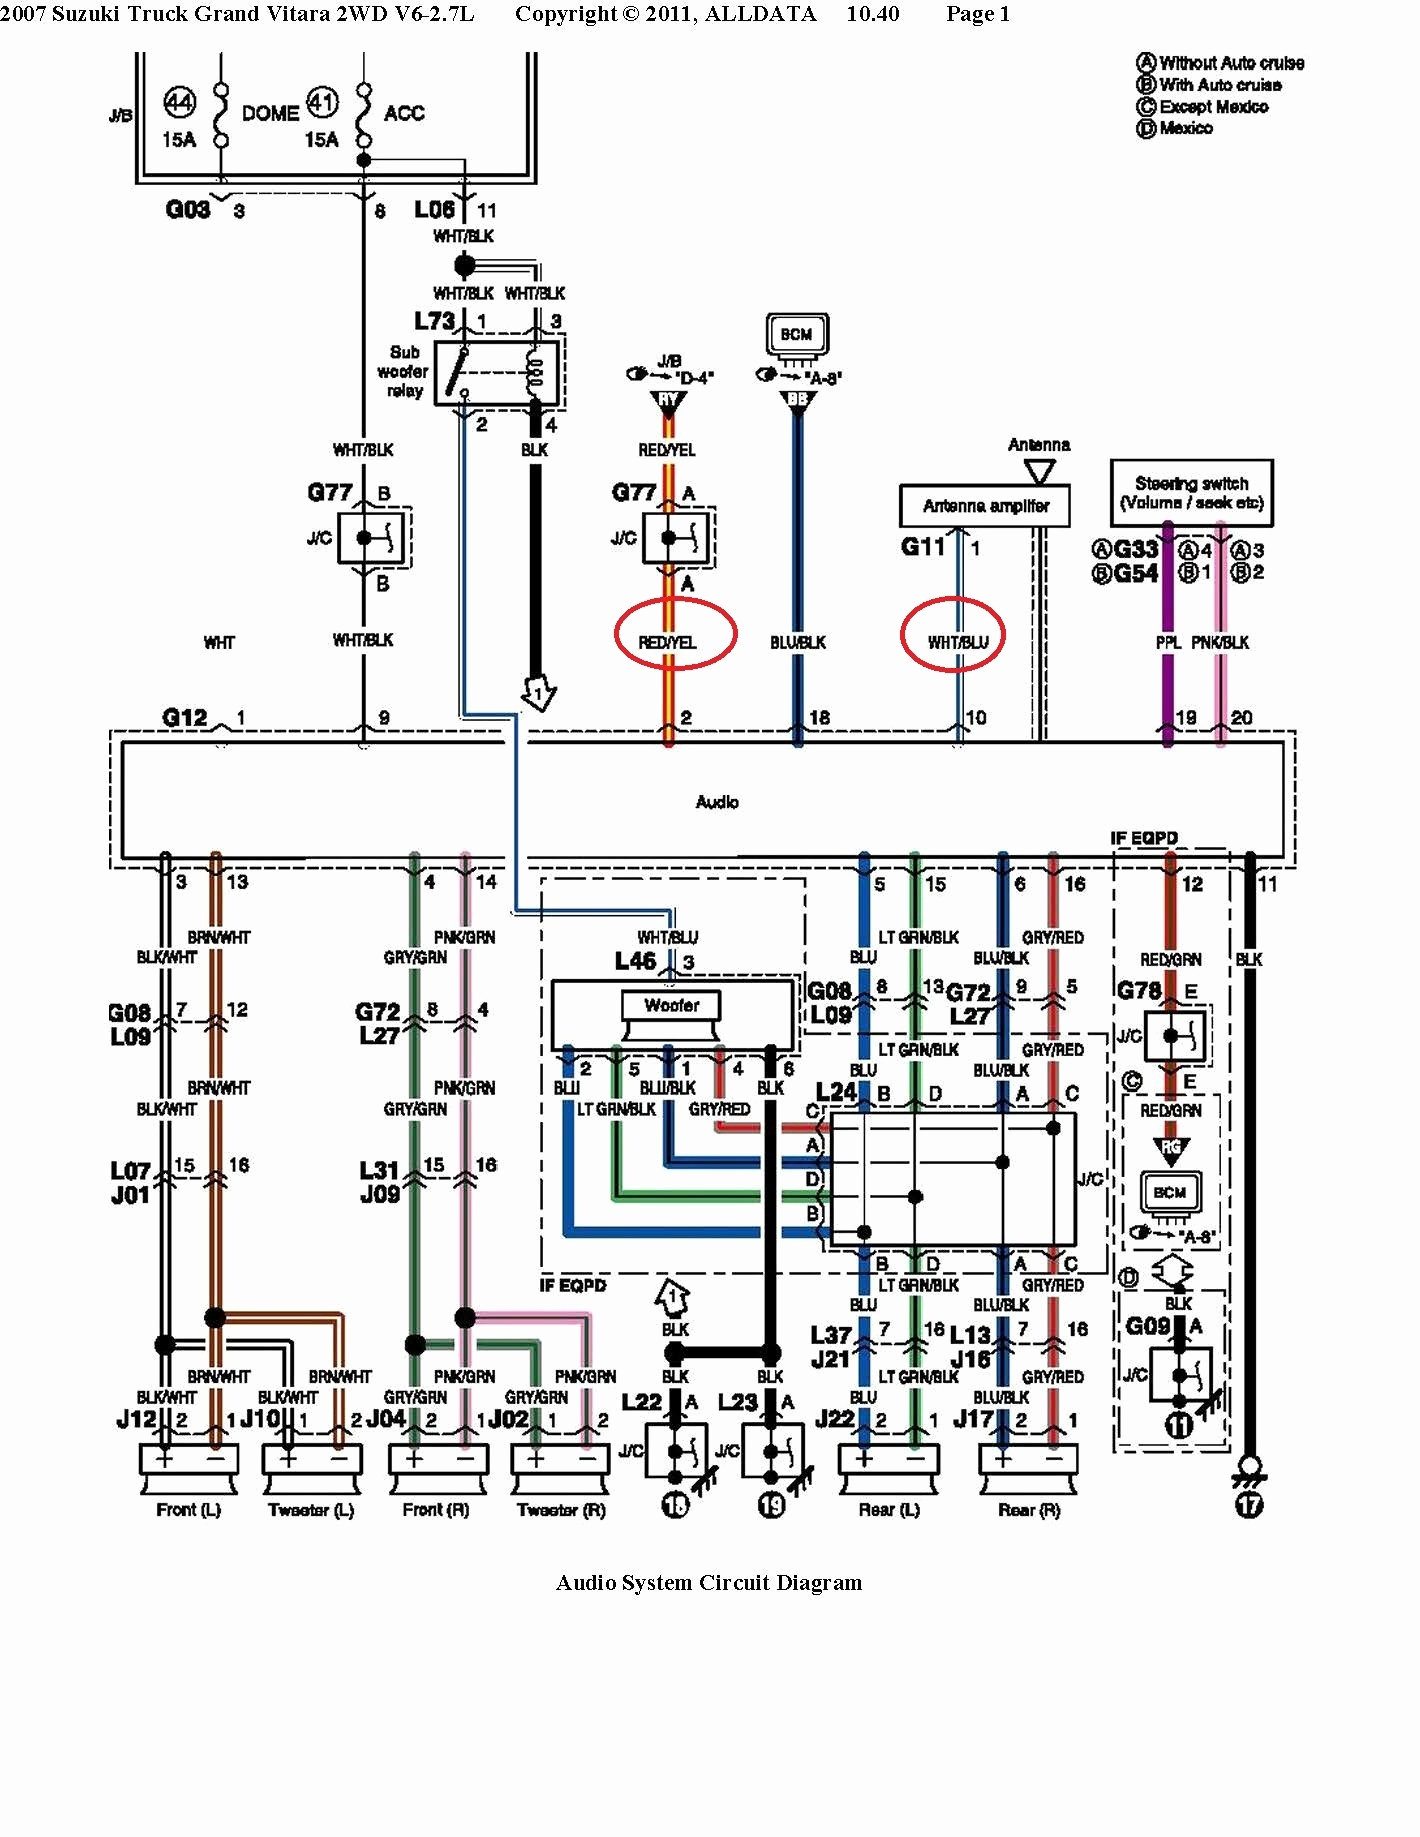 Jbl Amplifier Wiring Diagram | Wiring Diagram - Toyota Jbl Amplifier Wiring Diagram